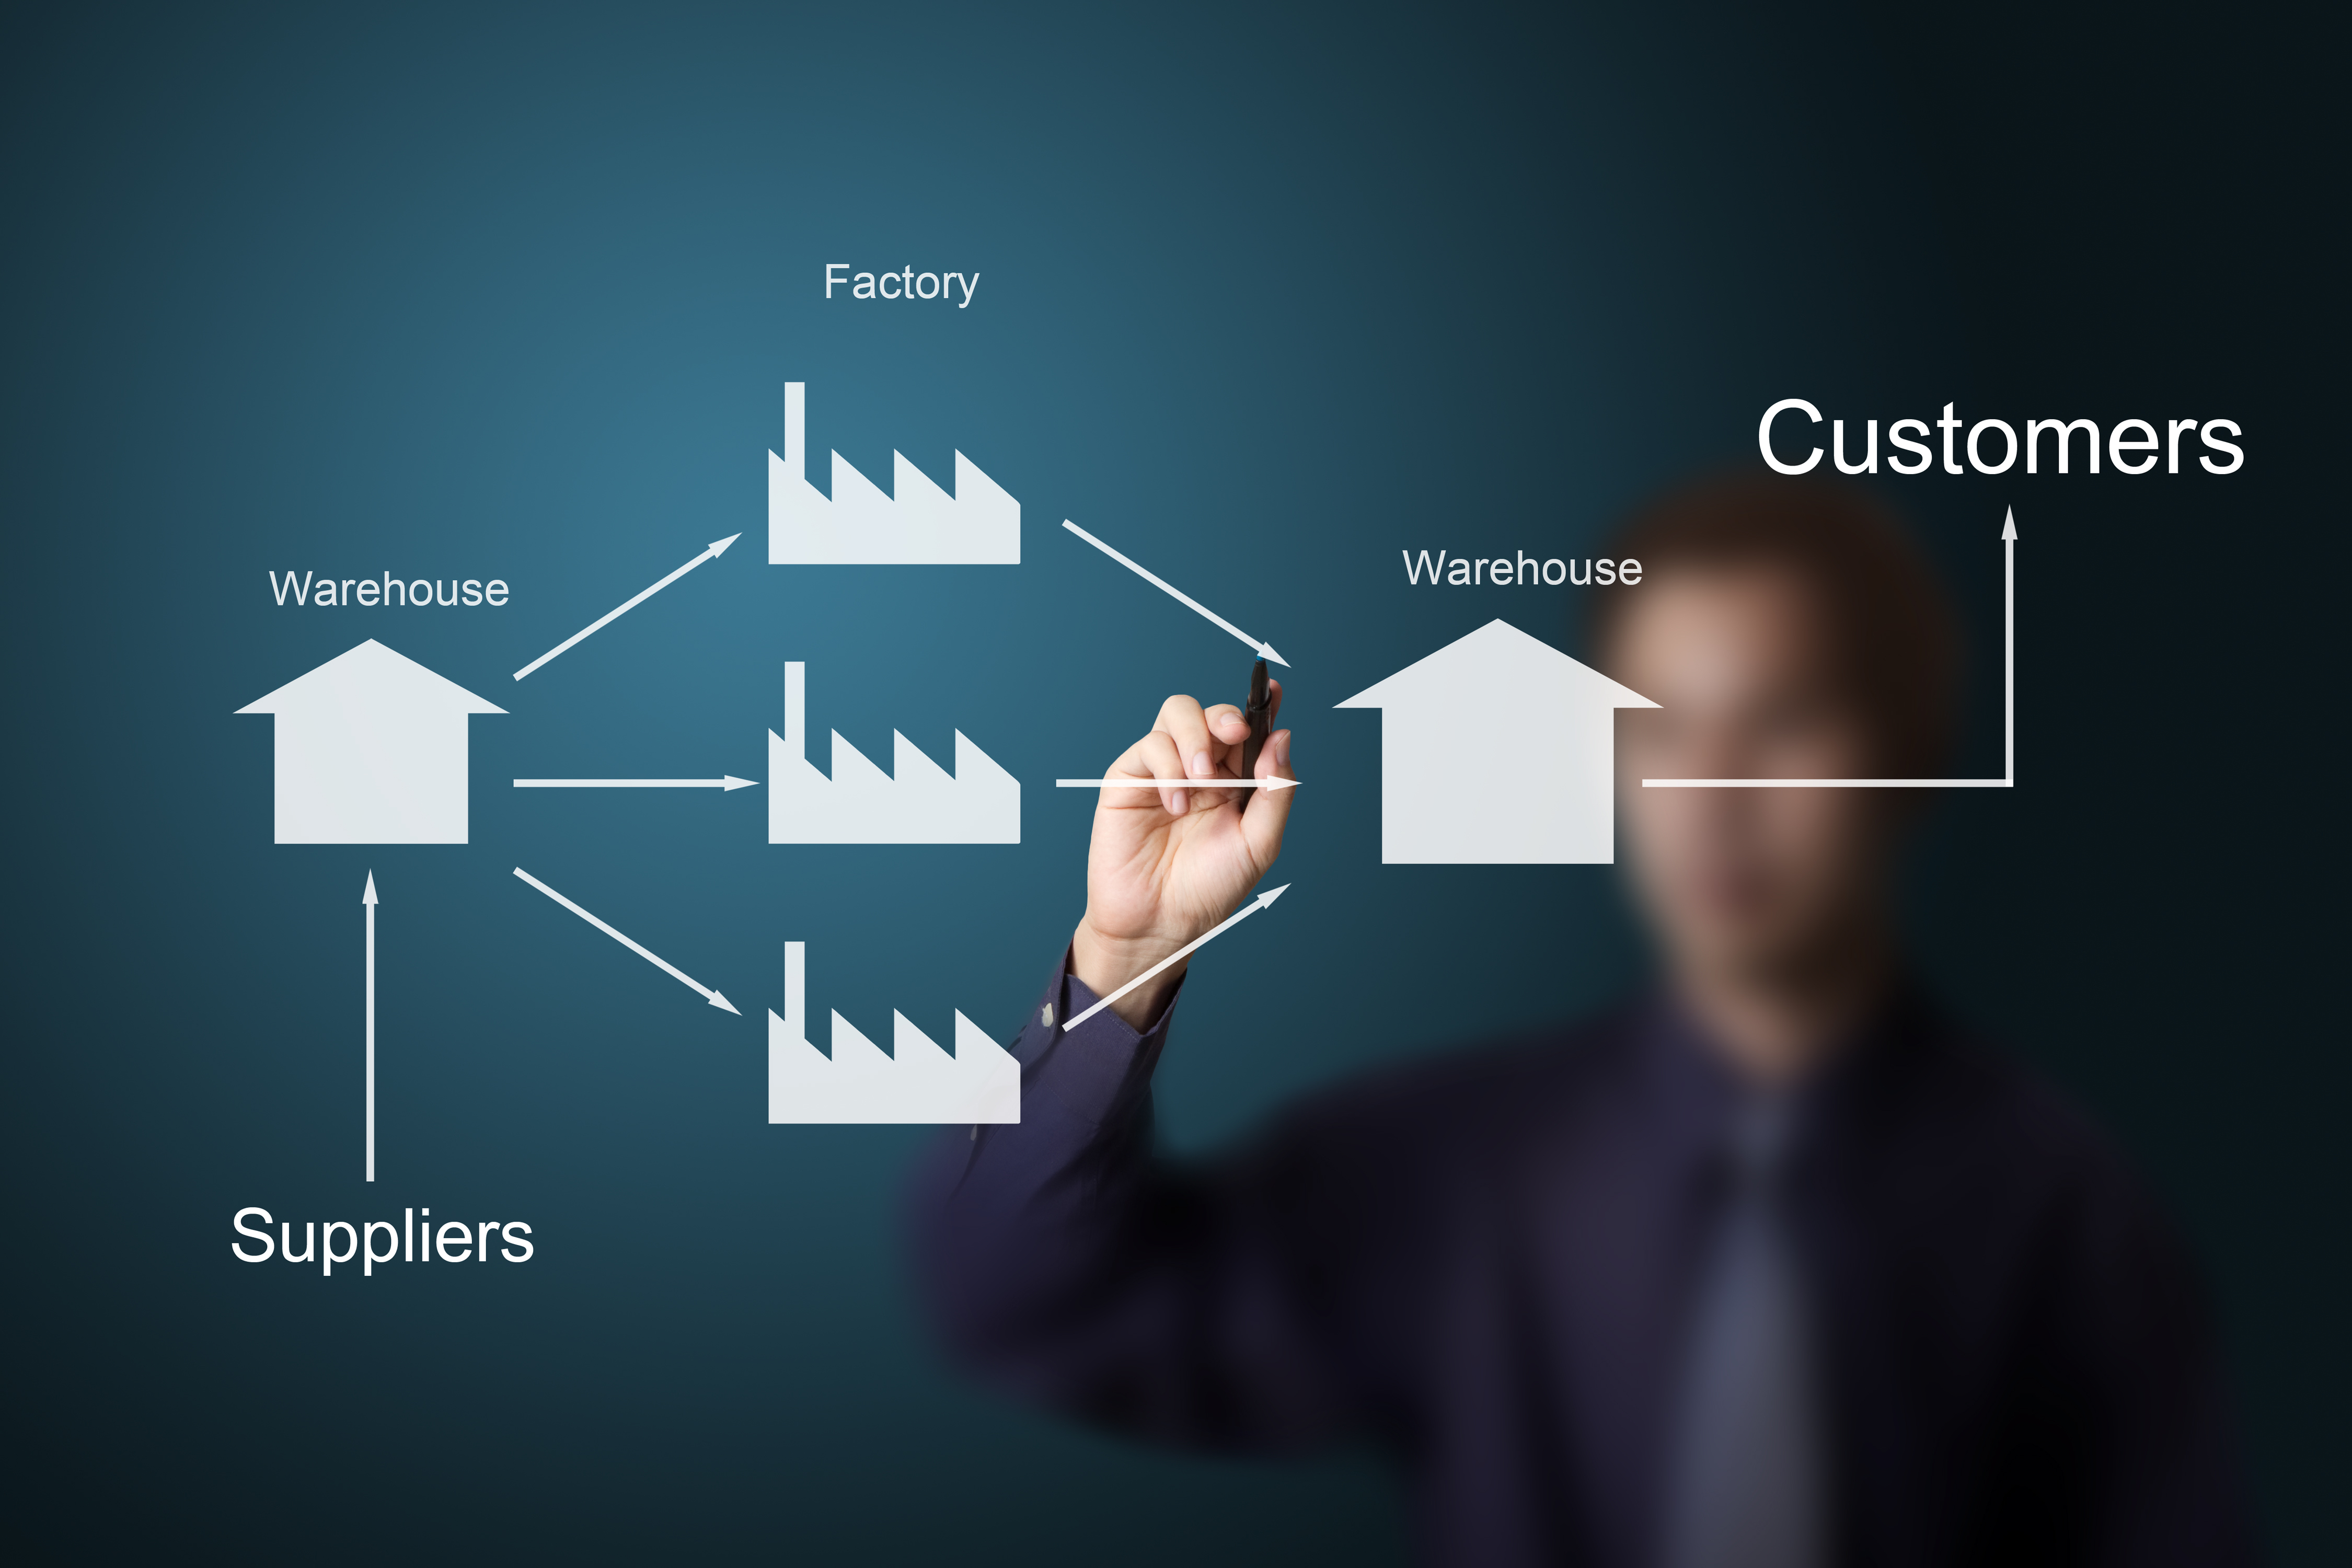 8 steps for best practice in your supply chain